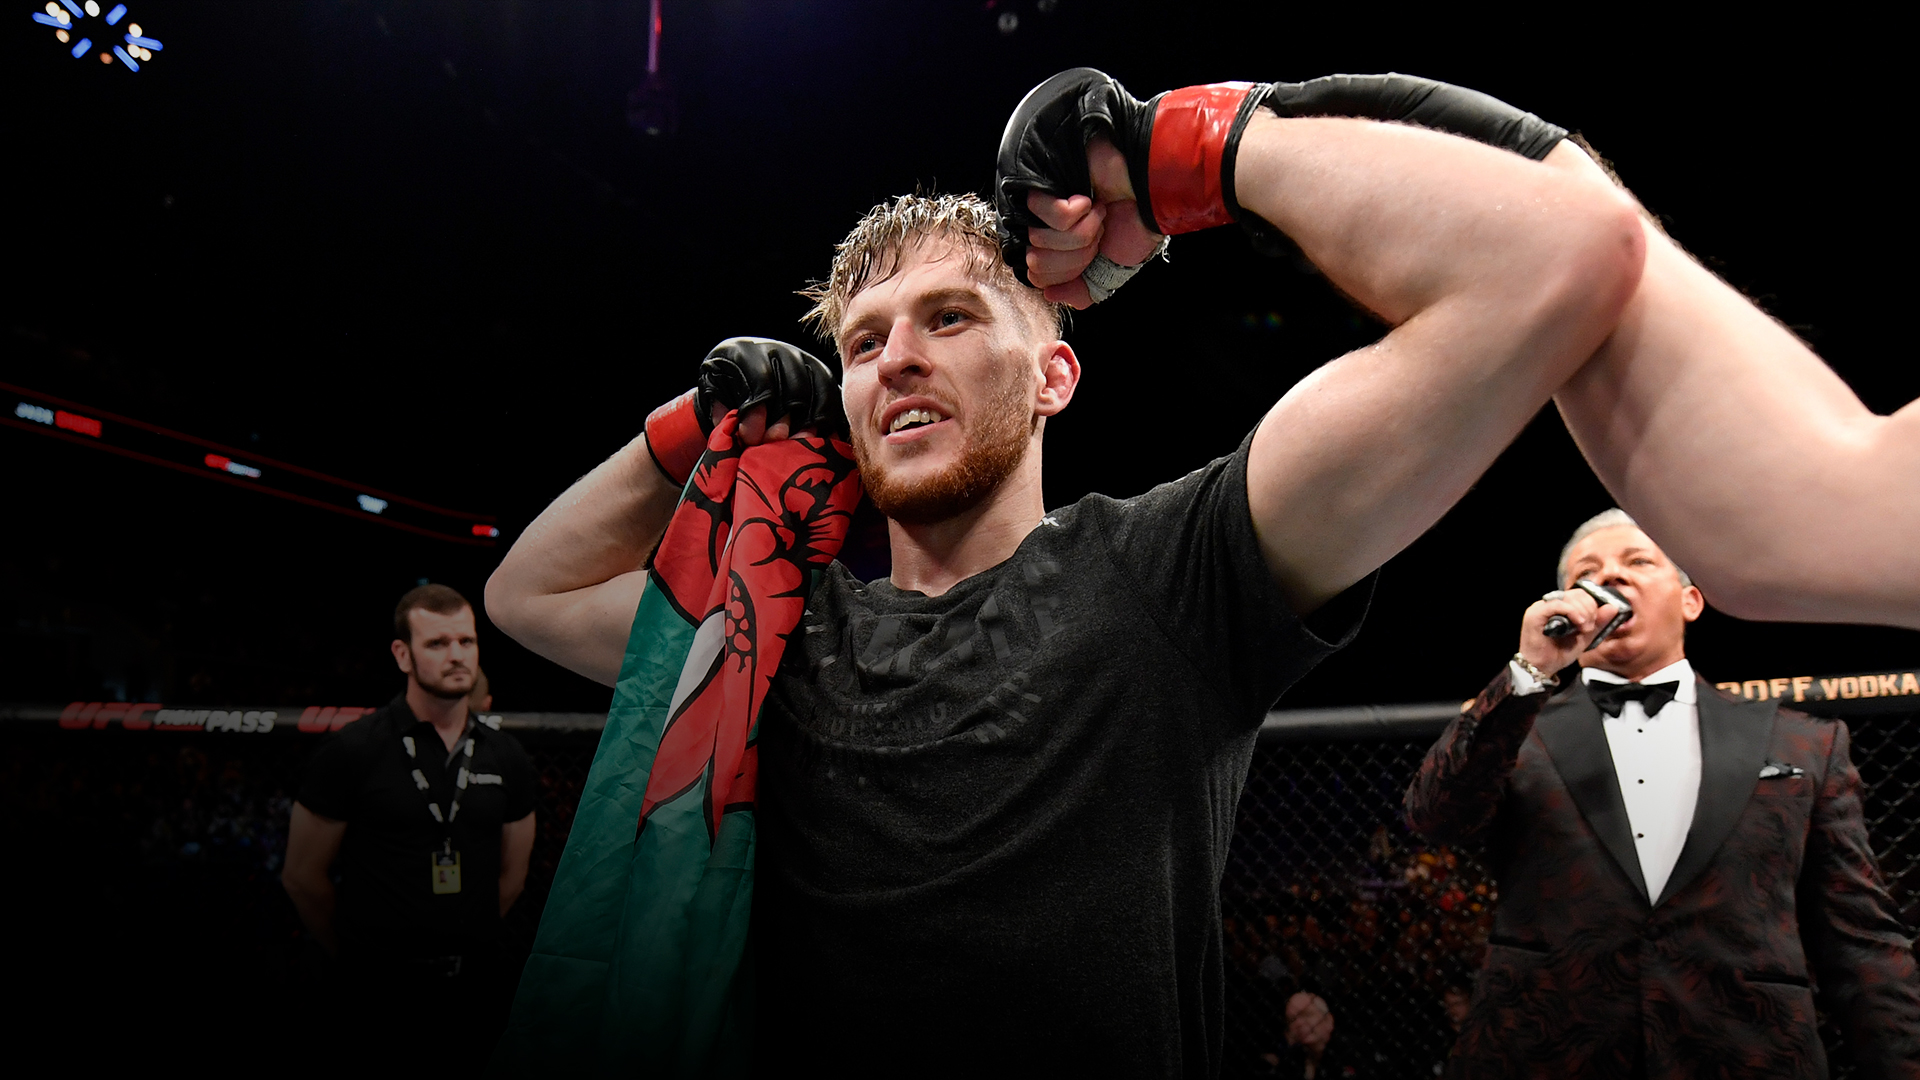 Jack Shore of Wales celebrates his submission victory over Nohelin Hernandez in their bantamweight bout during the UFC Fight Night event at Royal Arena on September 28, 2019 in Copenhagen, Denmark. (Photo by Jeff Bottari/Zuffa LLC)